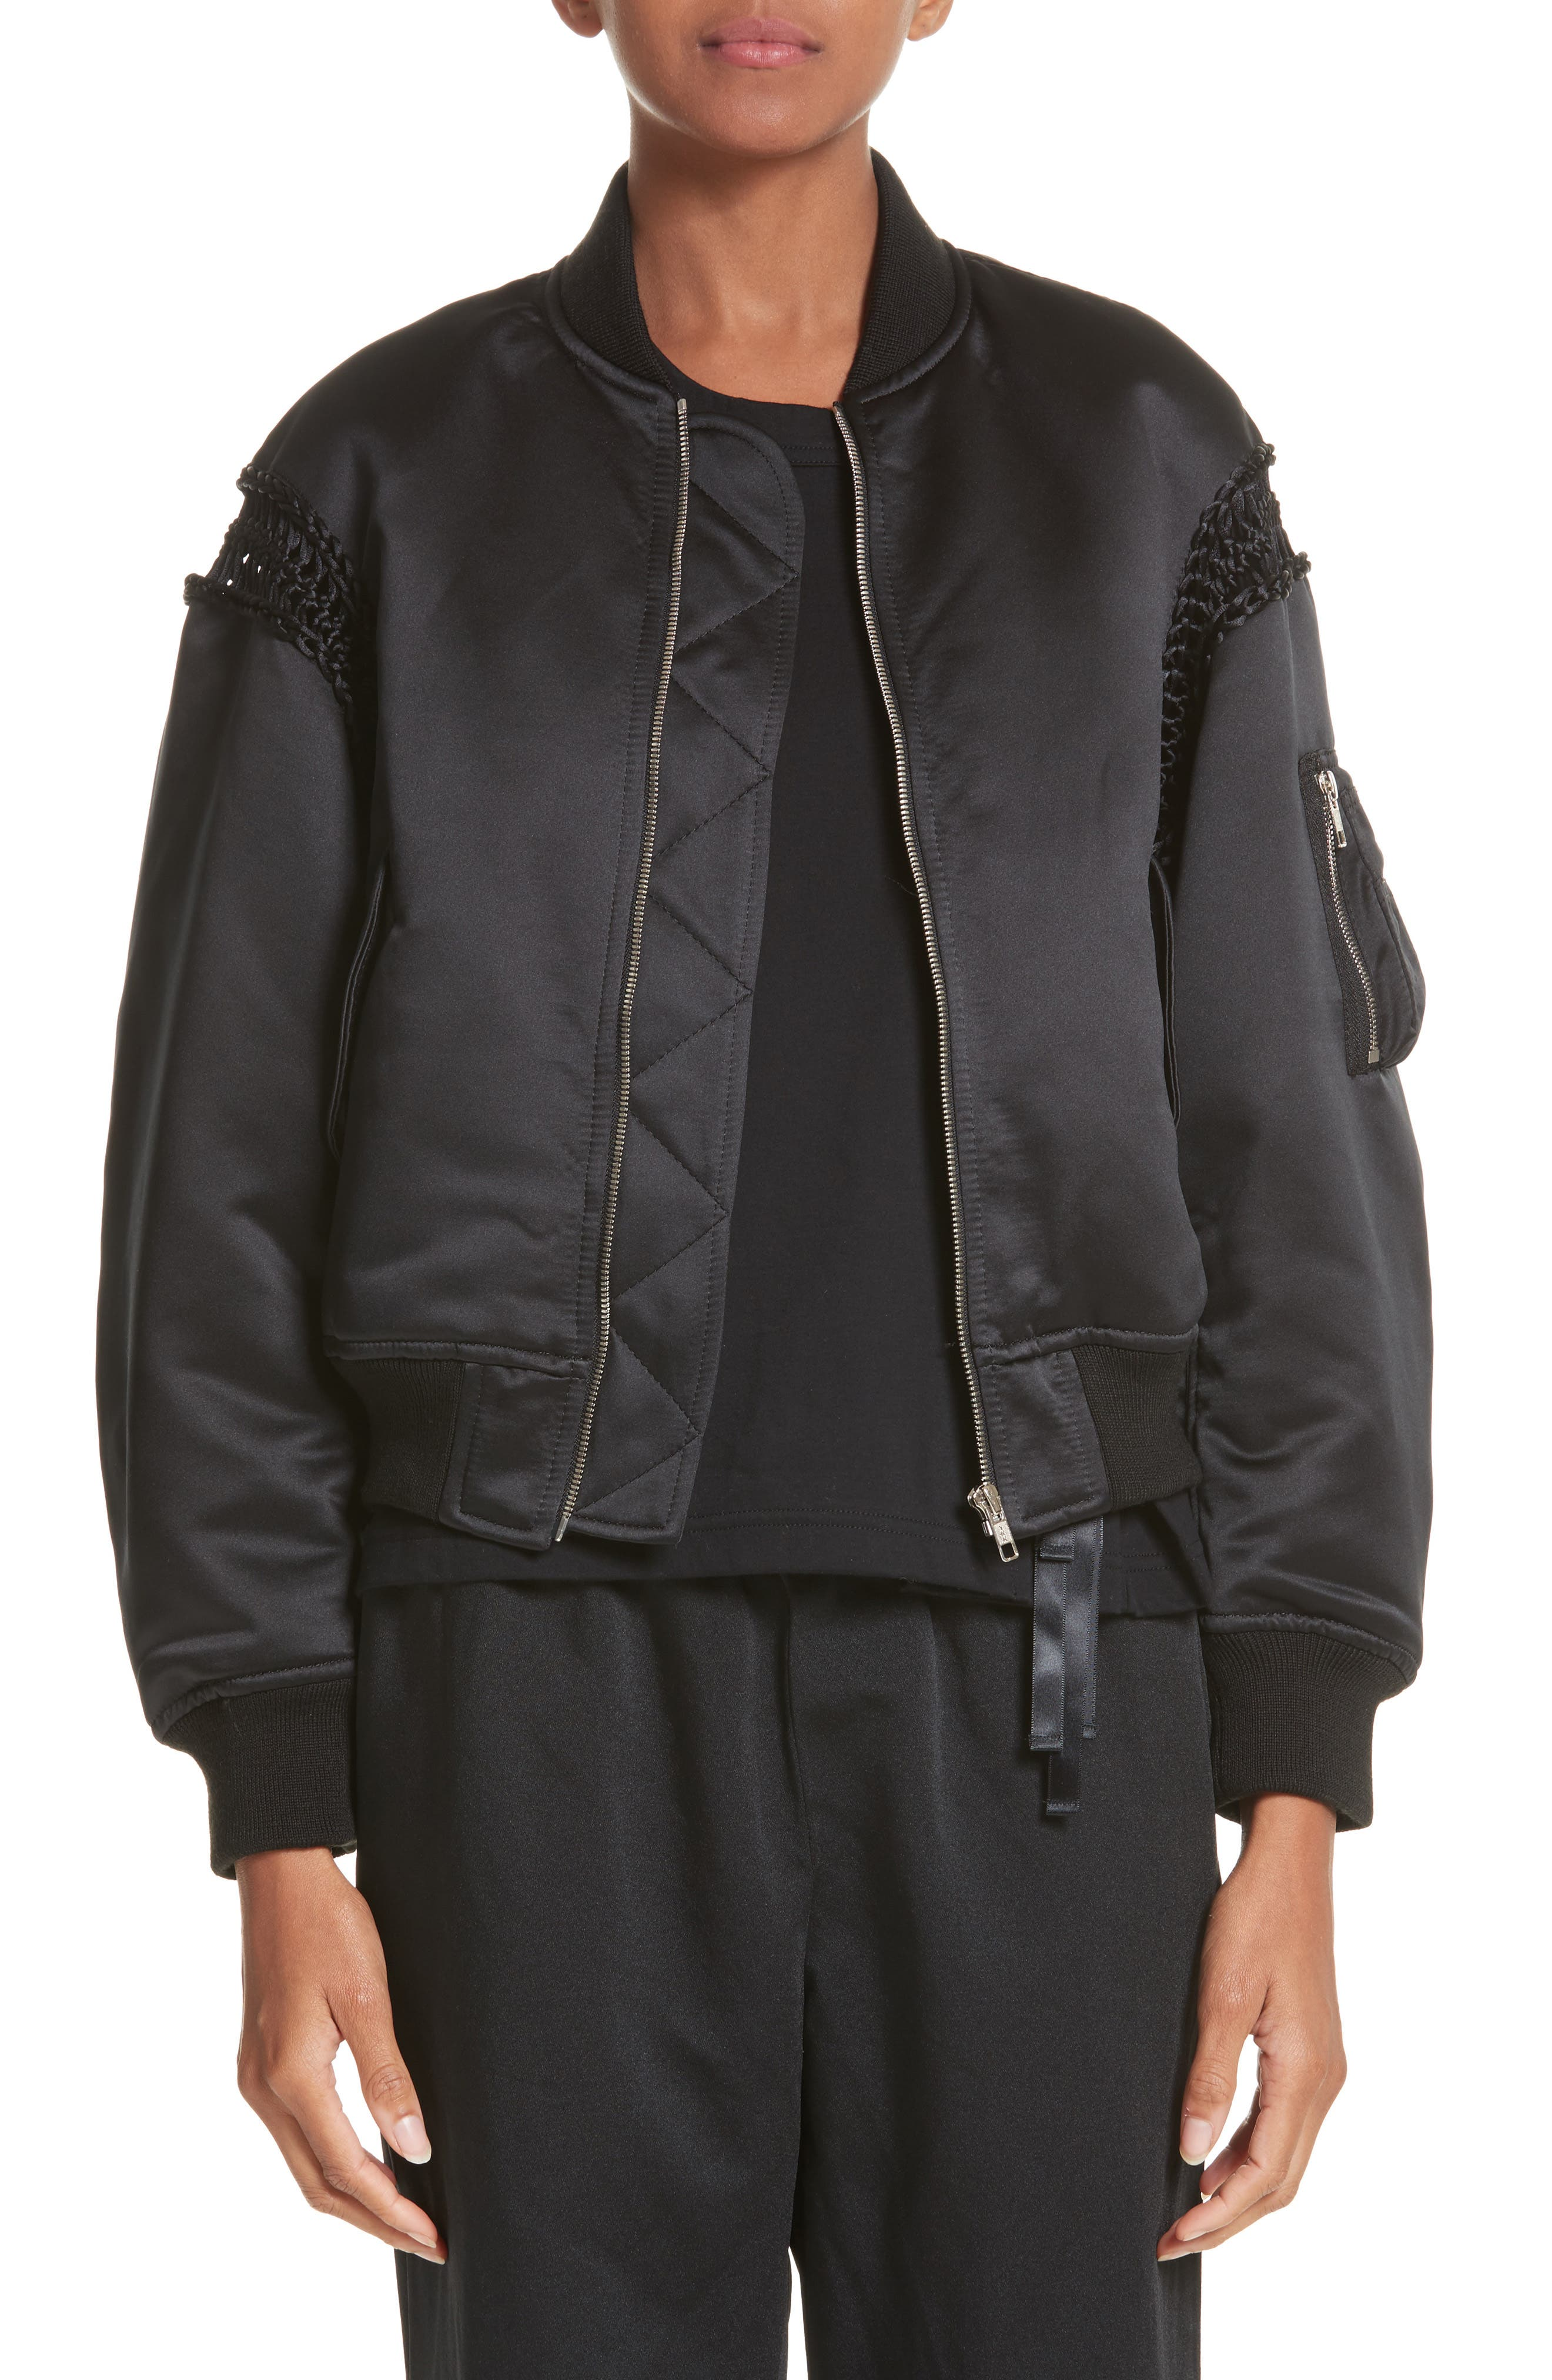 Alternate Image 1 Selected - noir kei ninomiya Macramé Trim Satin Bomber Jacket